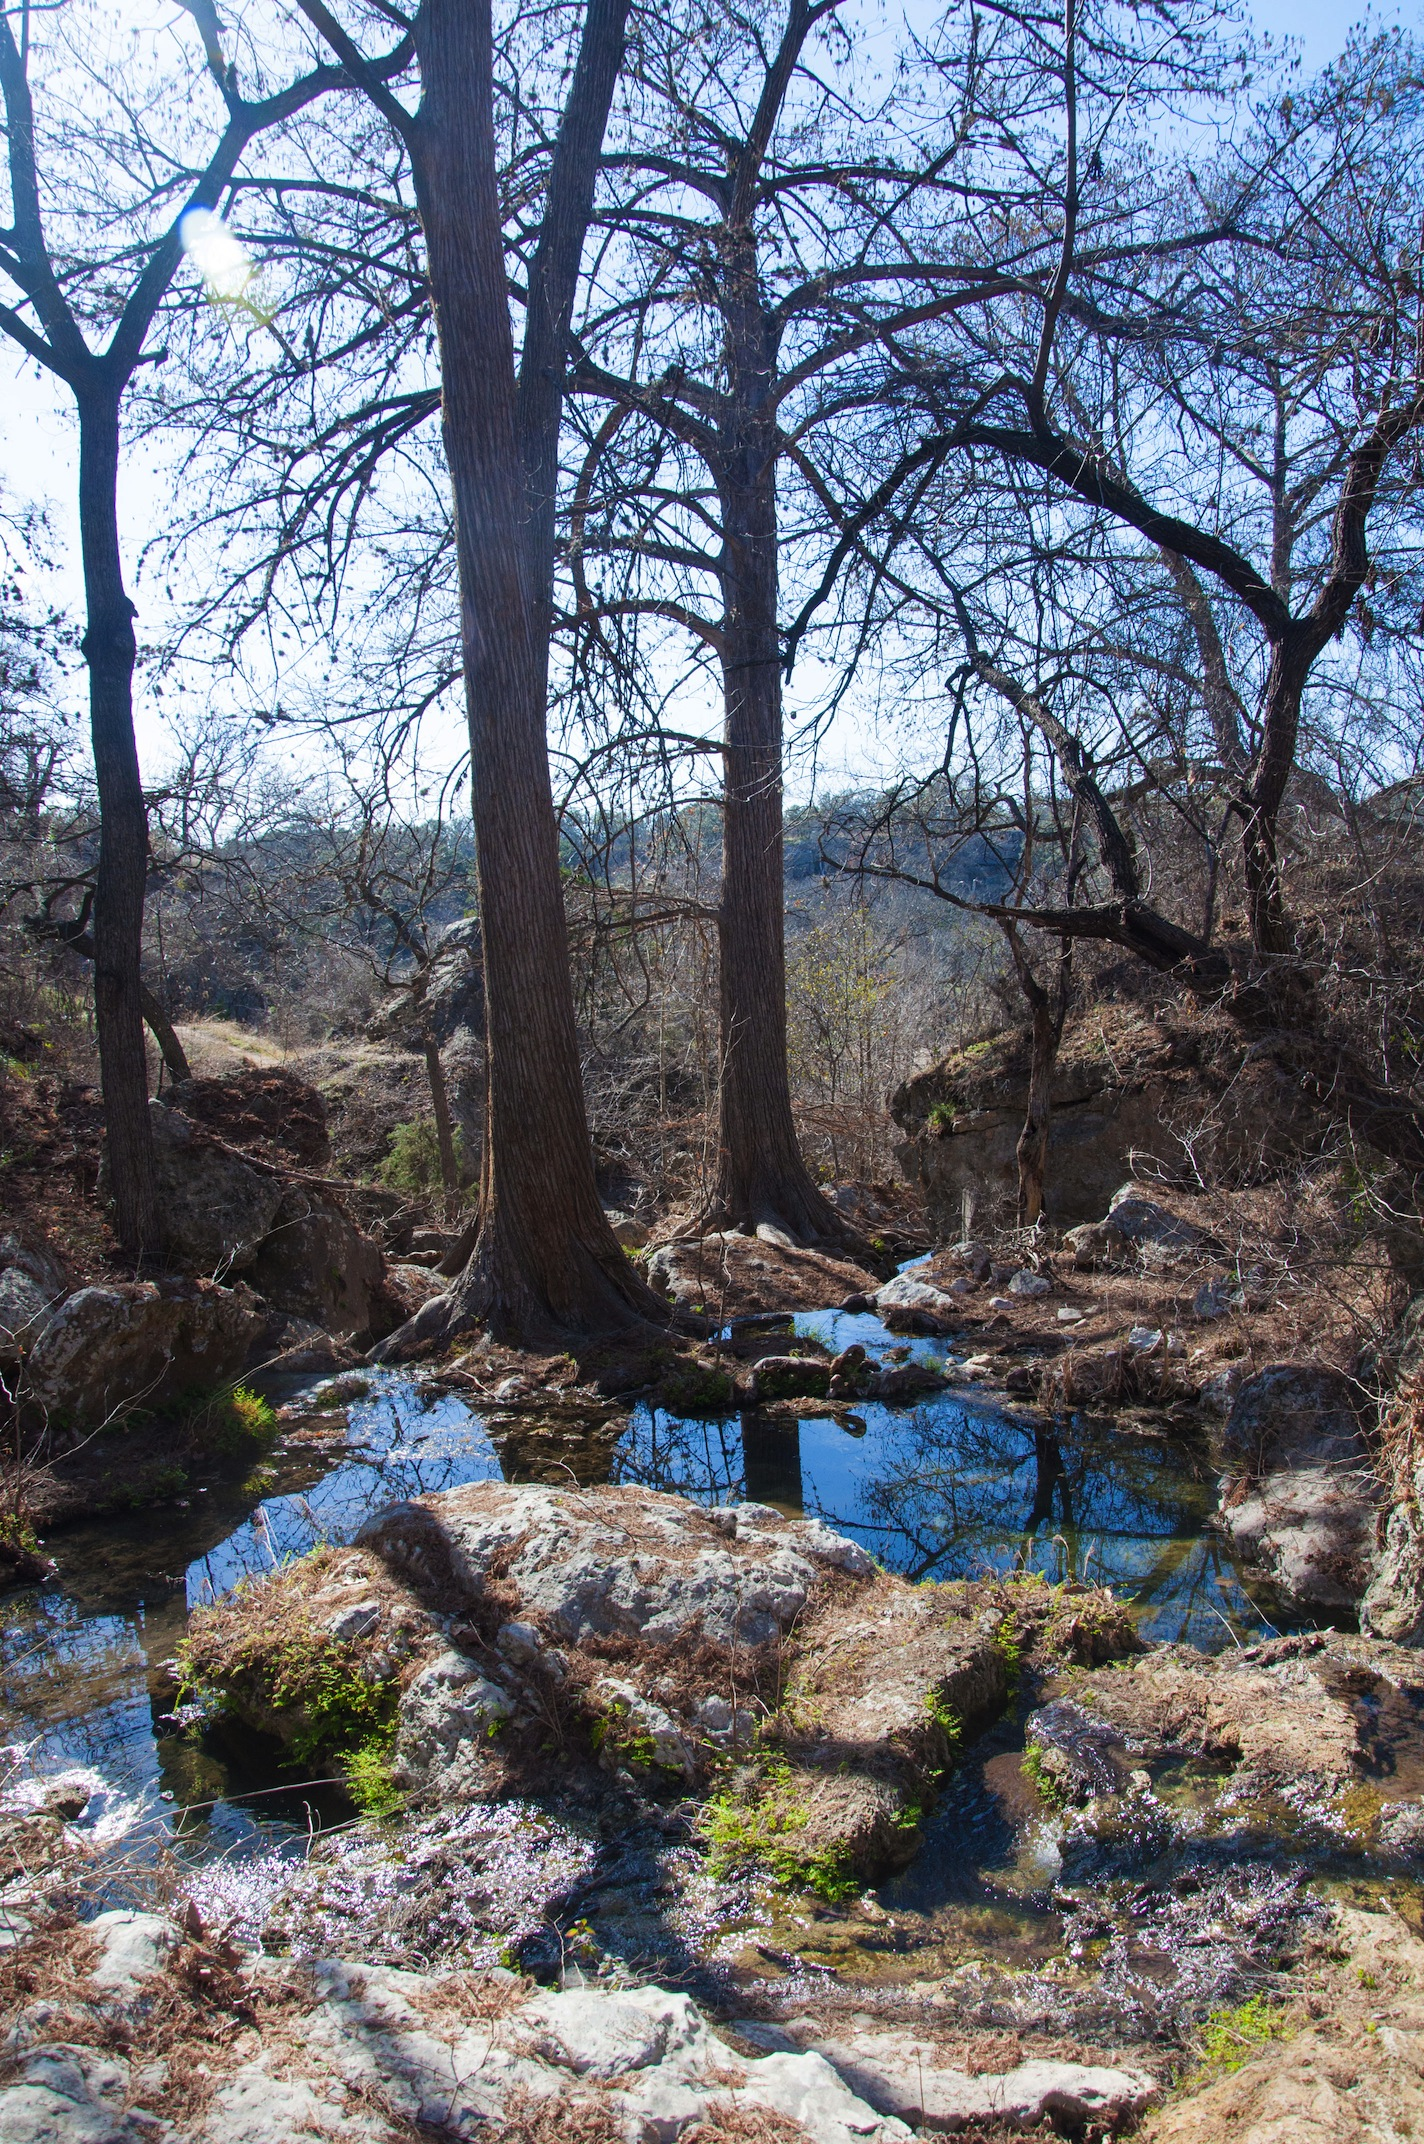 Hiking in Dripping Springs, TX